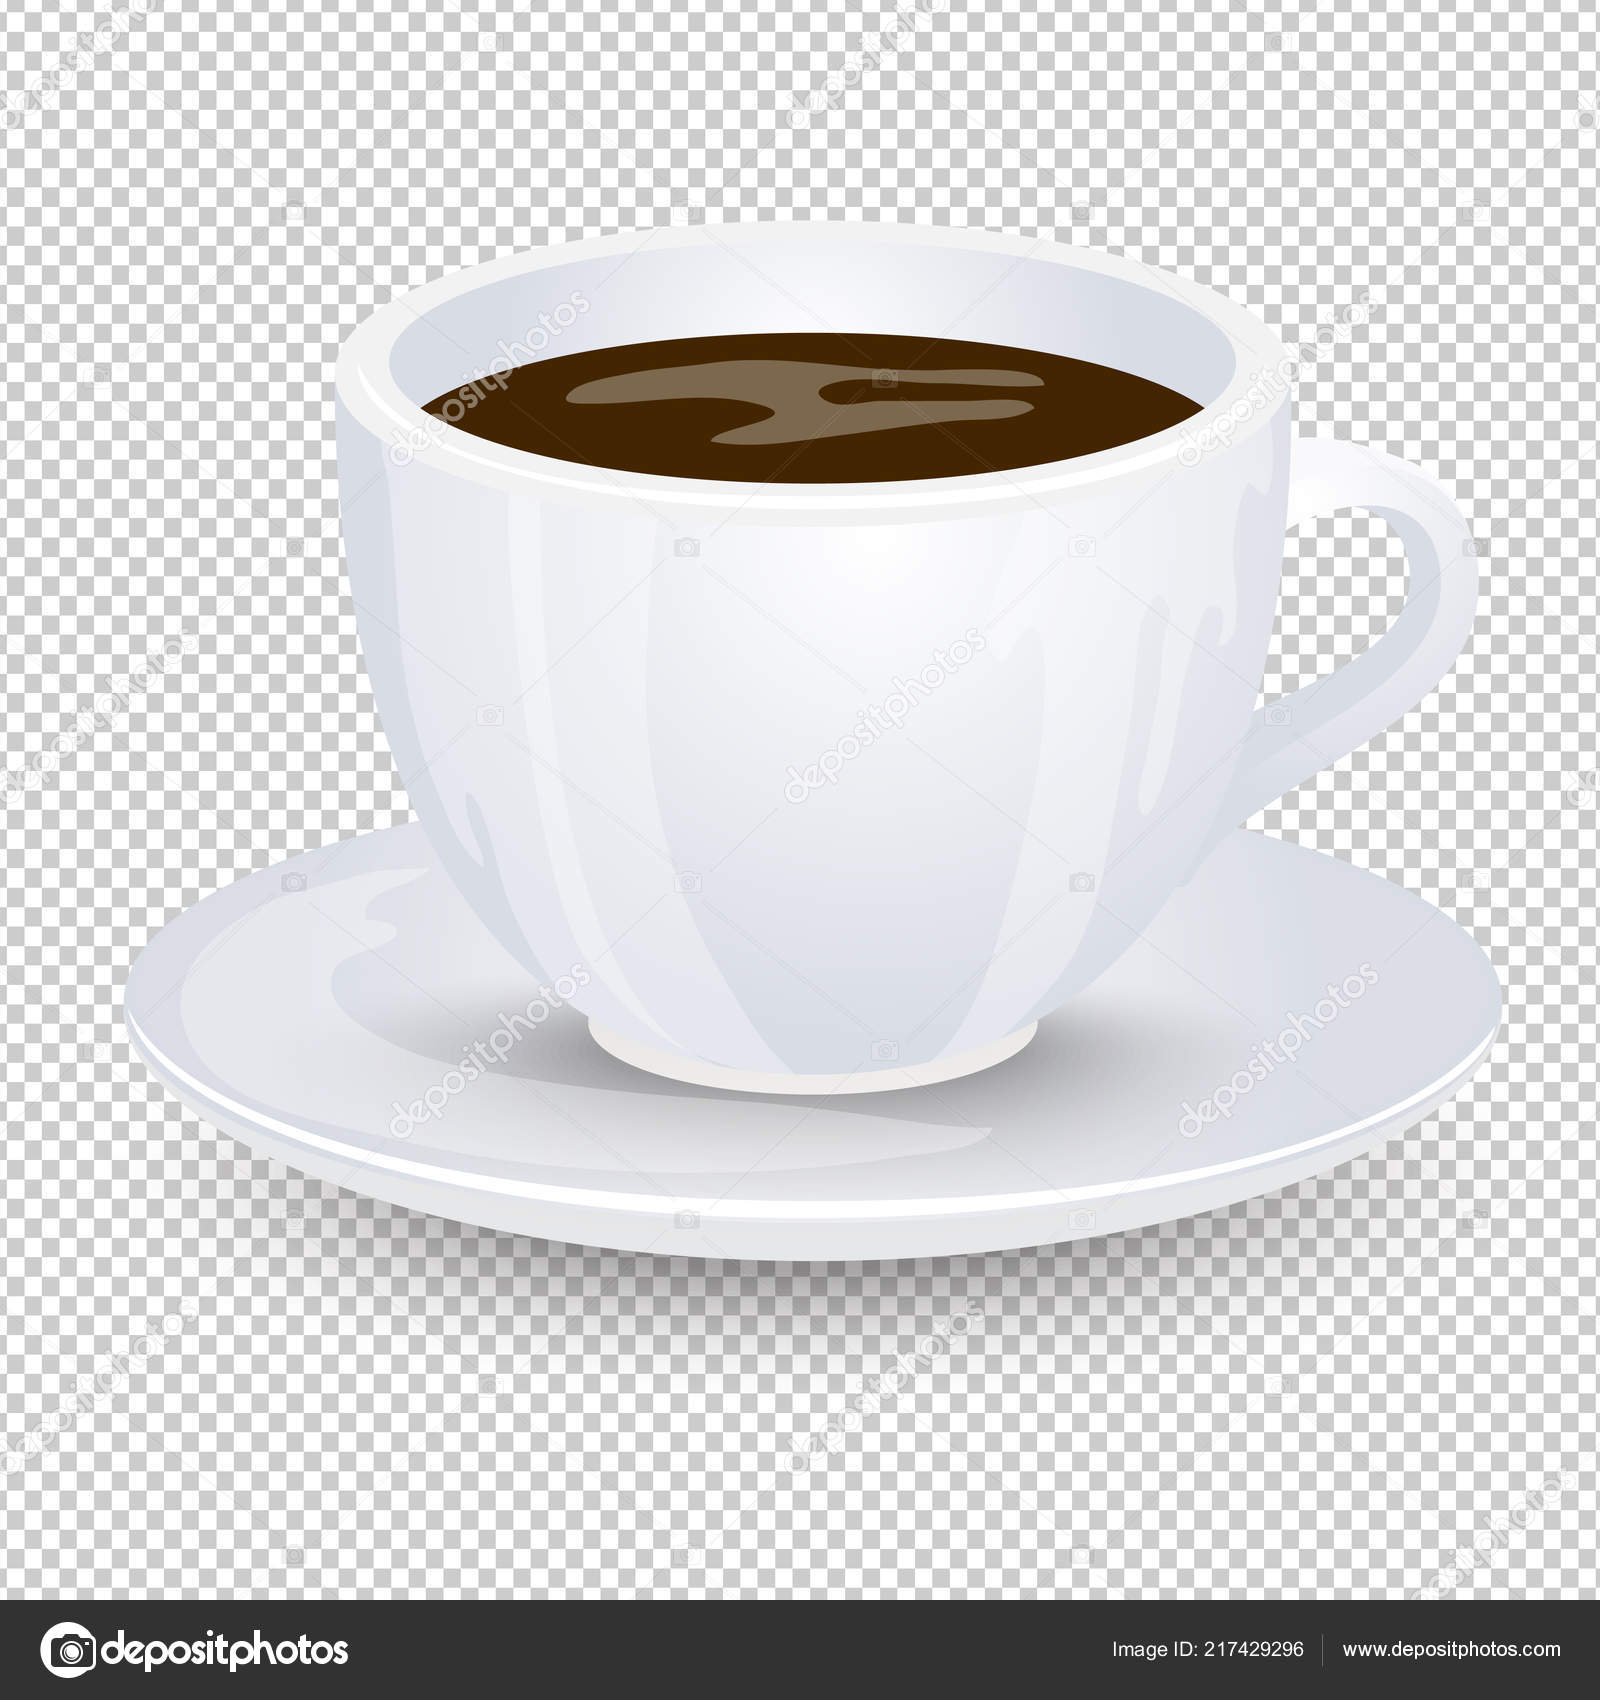 Classic Black Coffee White Cup Saucer Isolated Transparent Background Favorite Vector Image By C Anya Pic O Matic Ru Vector Stock 217429296